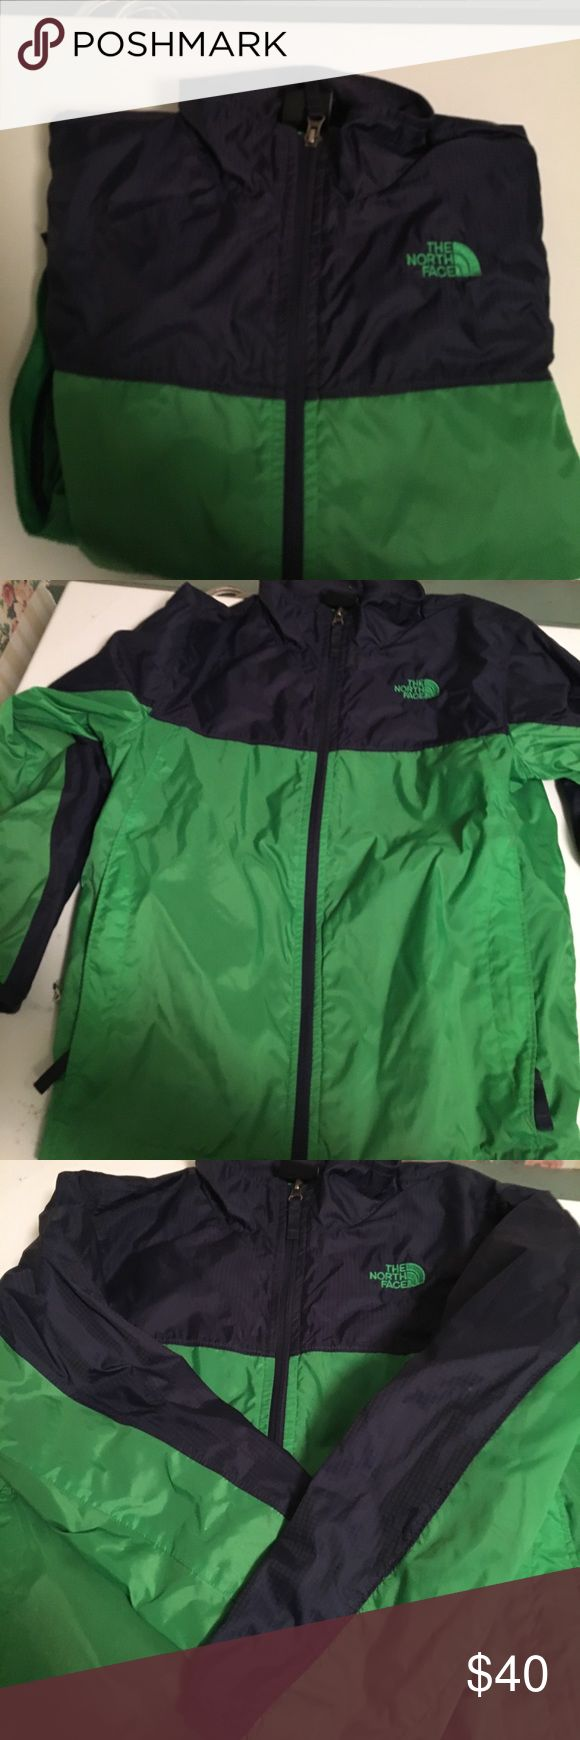 Boys North Face jacket size 10/12 Navy & Green lightweight jacket - best for cool spring or rainy weather. Front zipper. Used for two season but still in EUC.  Washes easily.  Inside tag has name and info ..... you could write over it or attach a new label. North Face Jackets & Coats Raincoats